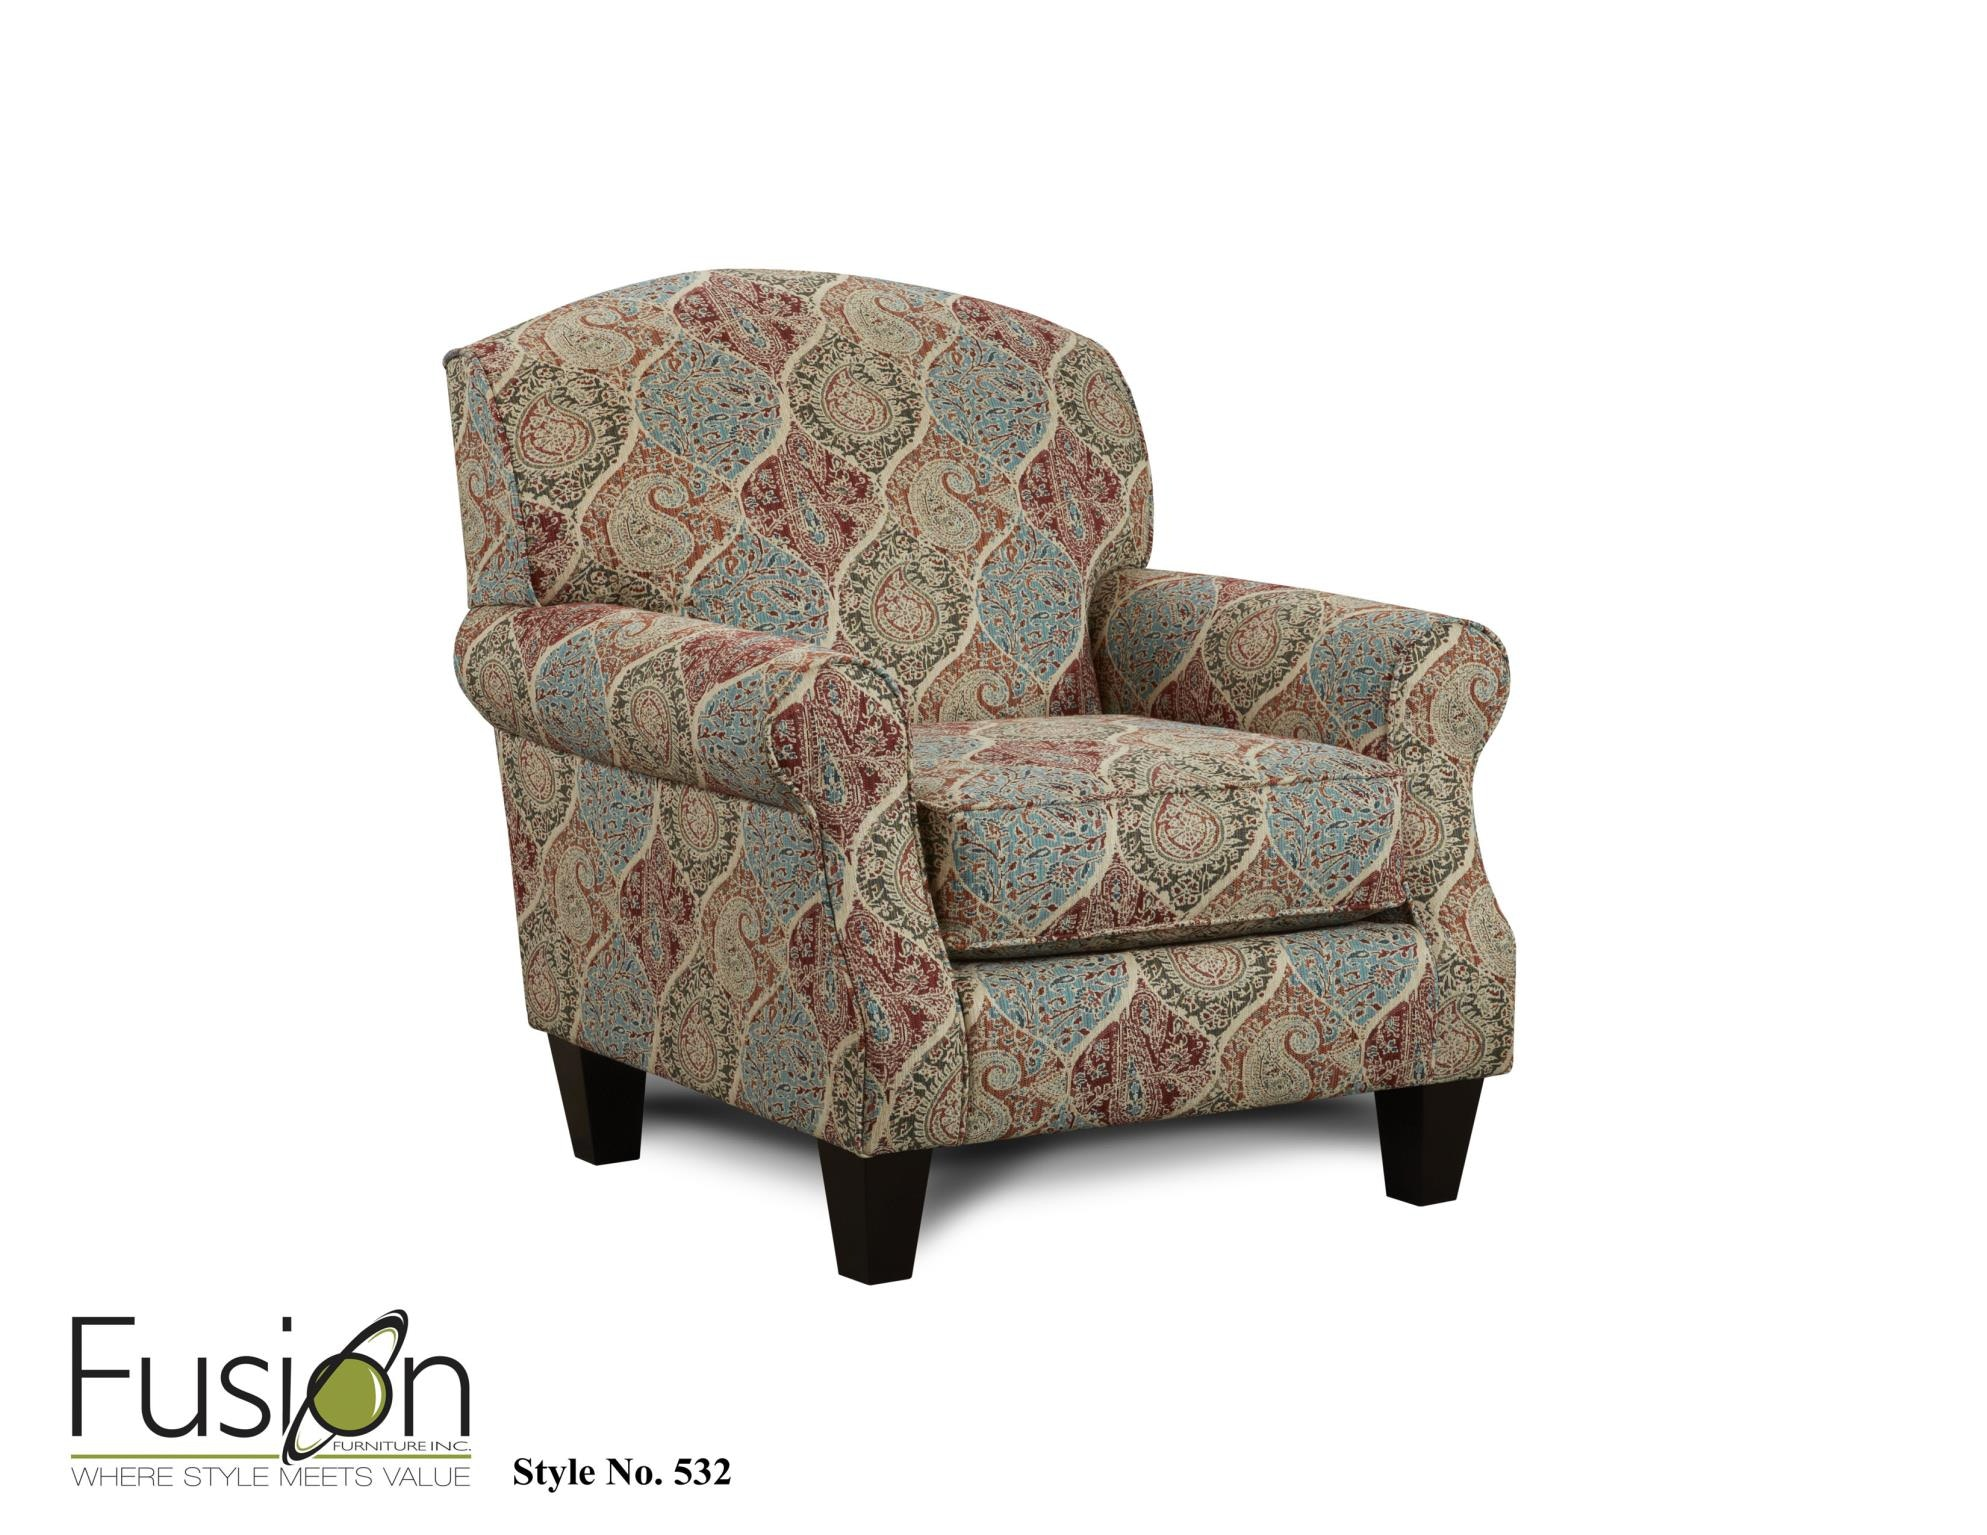 Superior Fusion Living Room Chair 532BILTMORE HEATHER   B.F. Myers Furniture    Goodlettsville And Nashville Area, TN